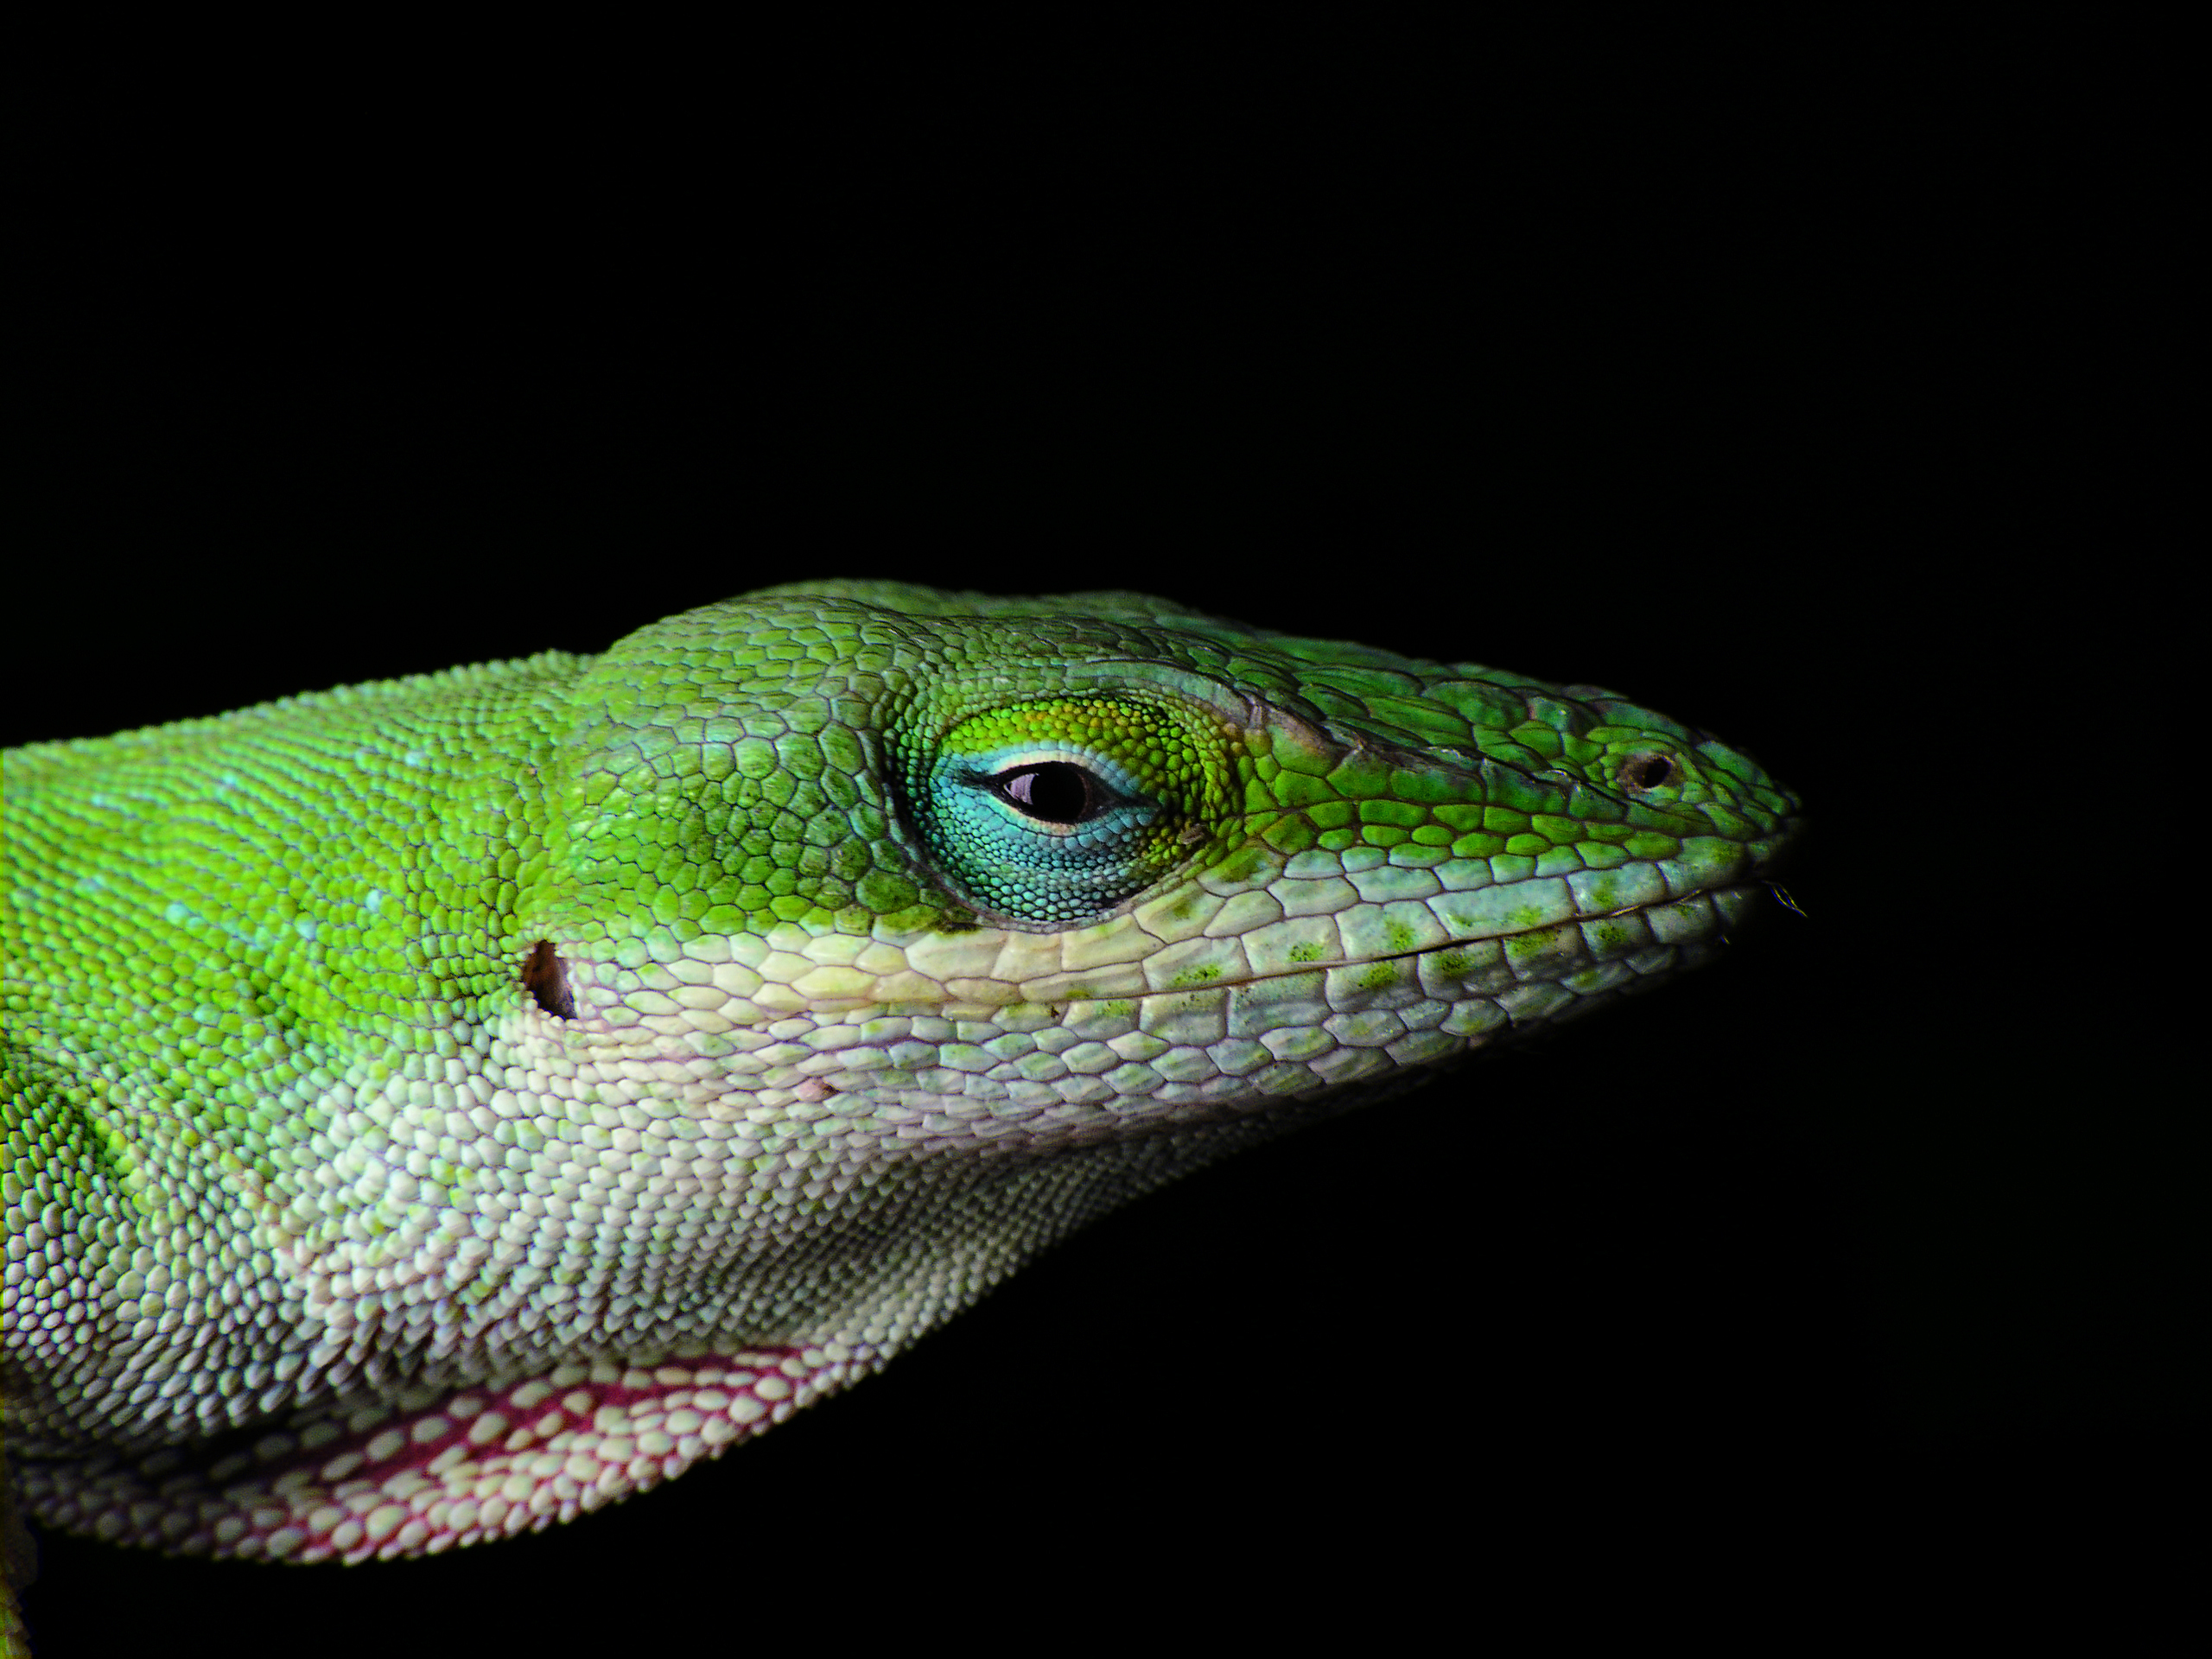 Up Close Anole